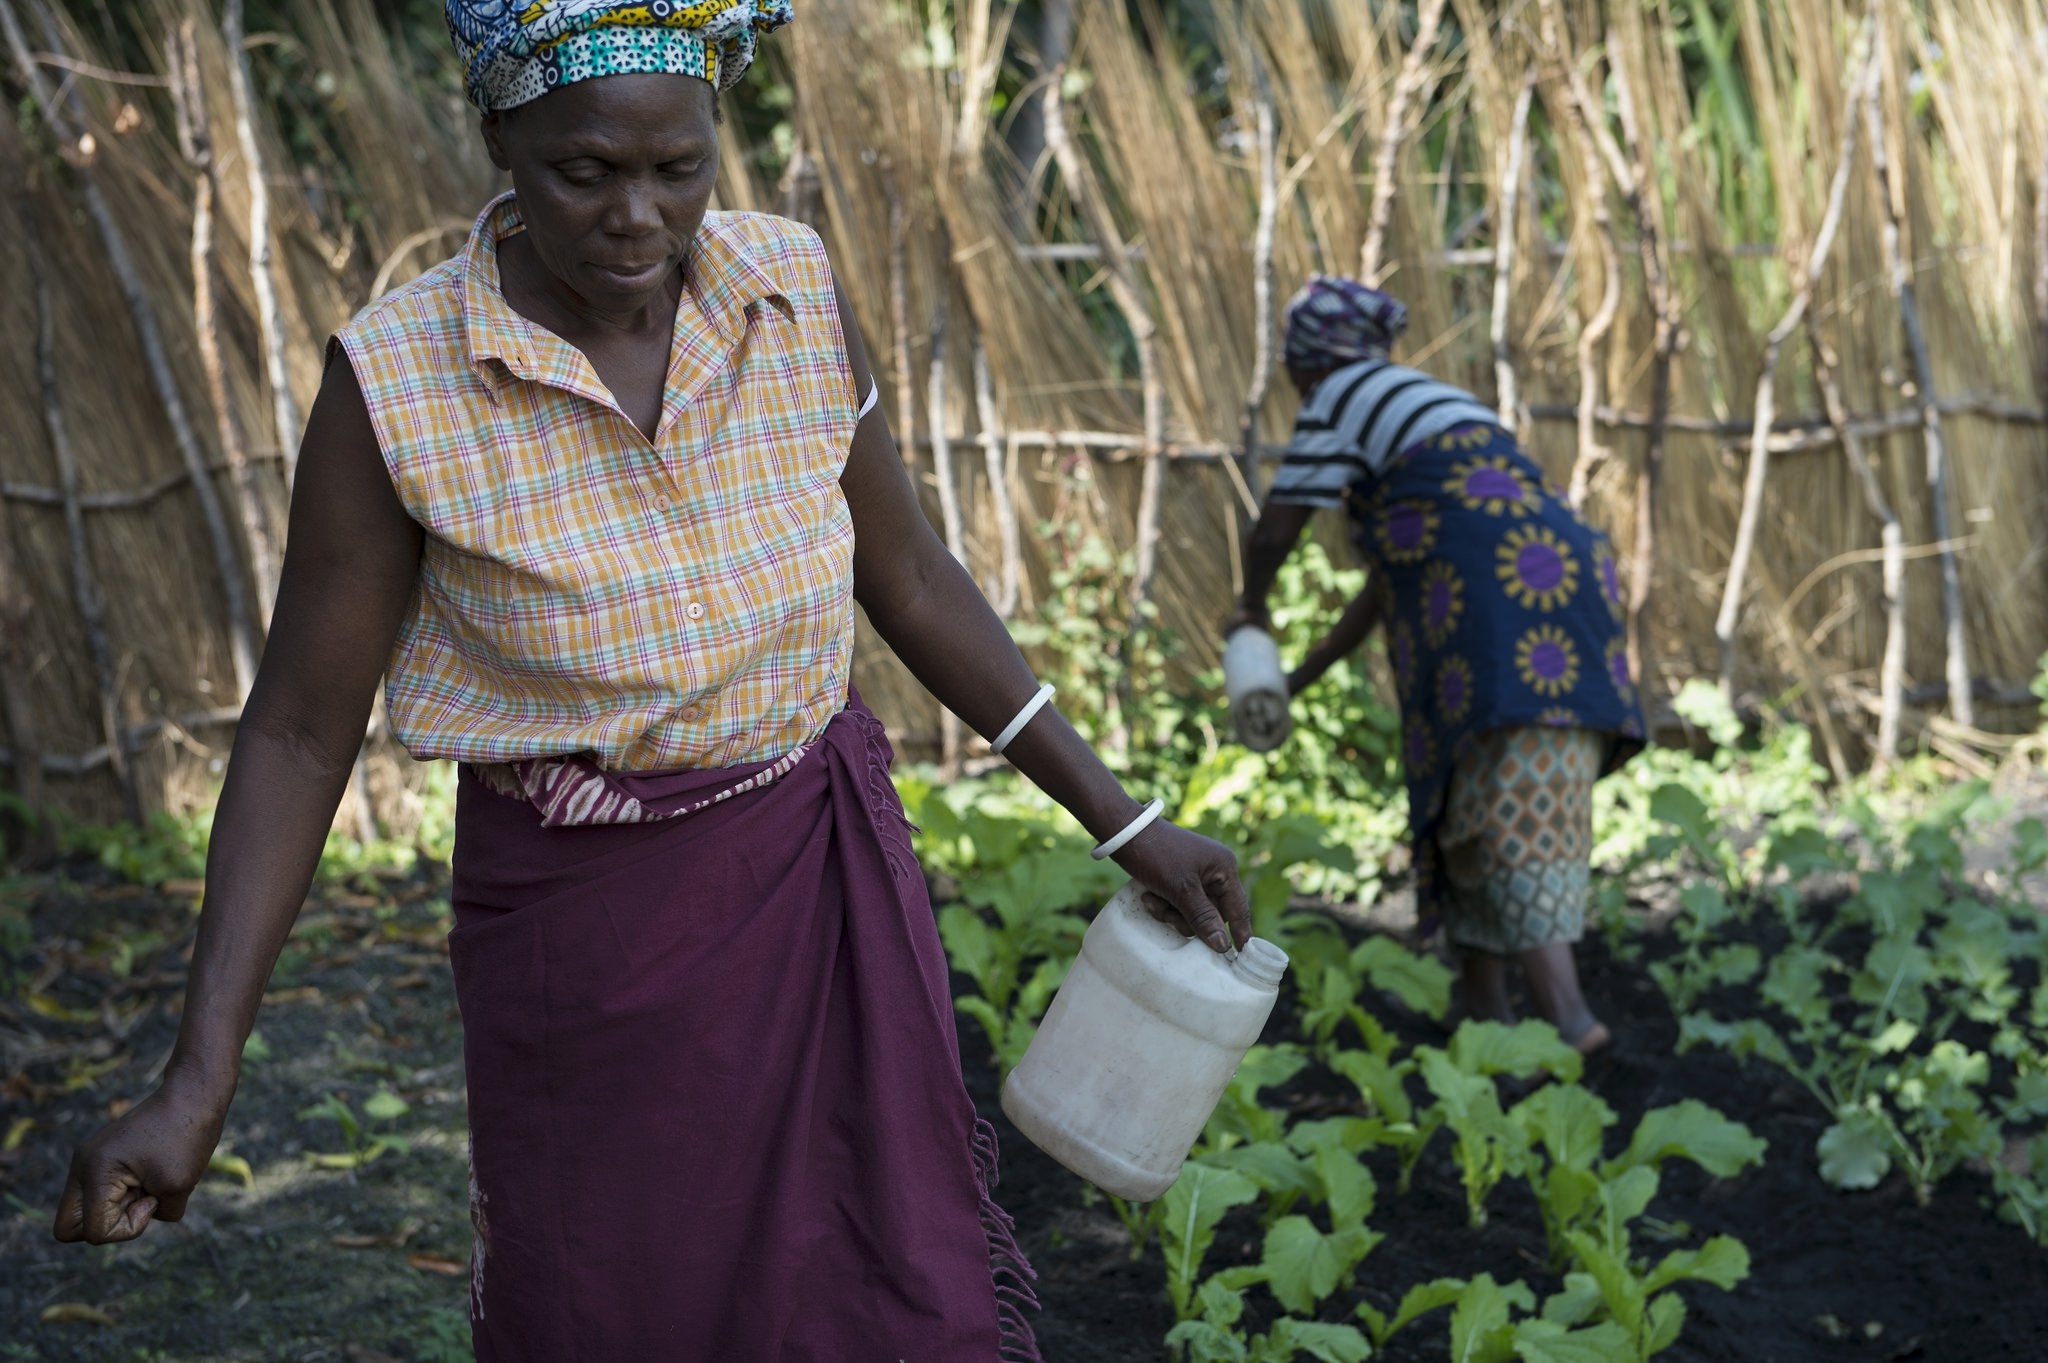 women-farmers-community-garden-zambia-flickr